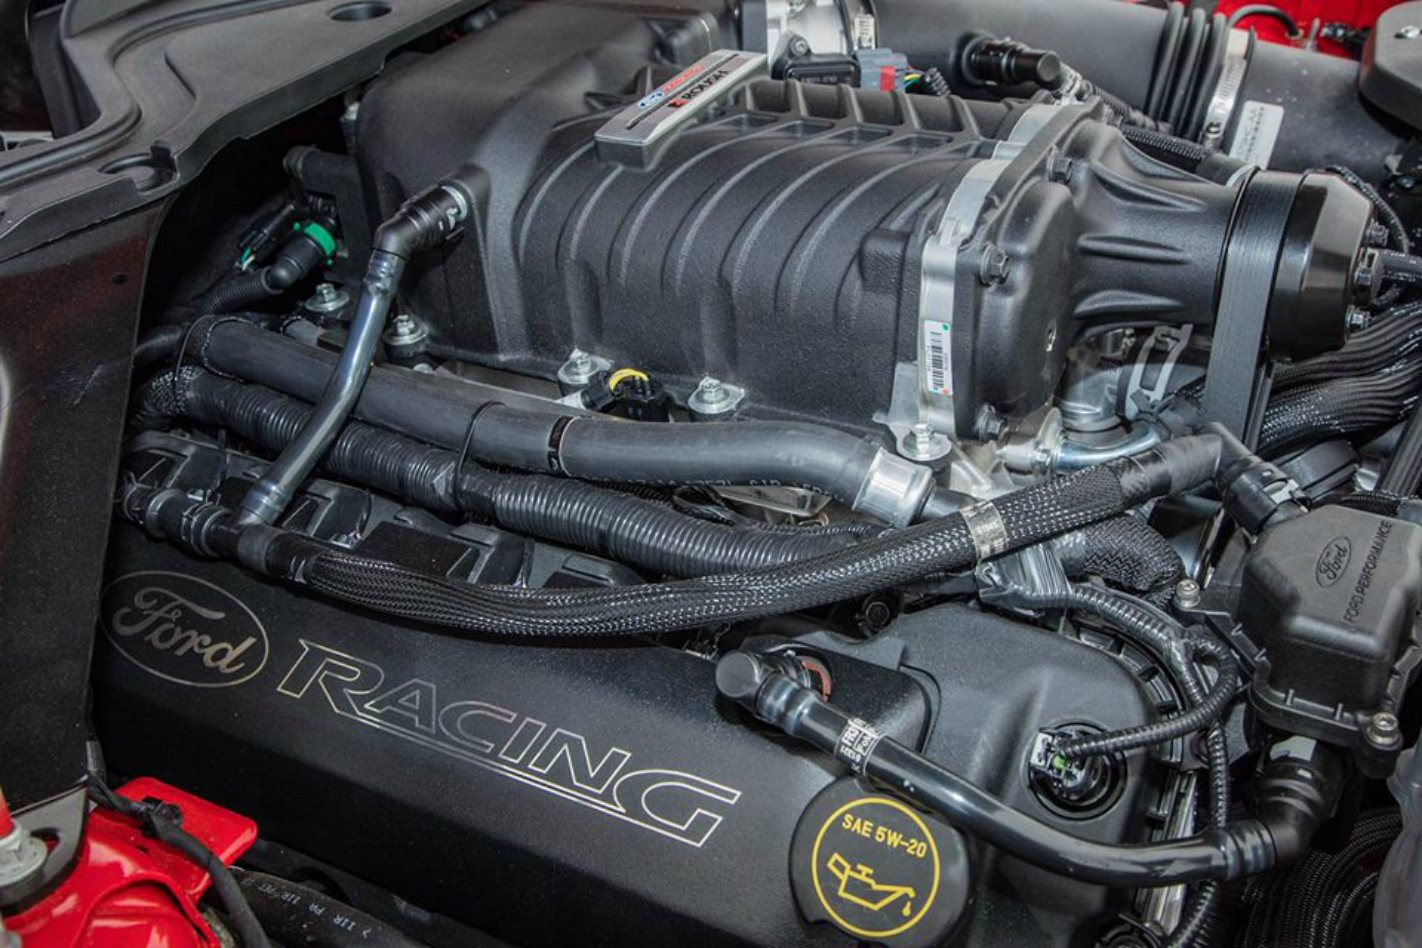 Russell Ingall Ford Mustang engine